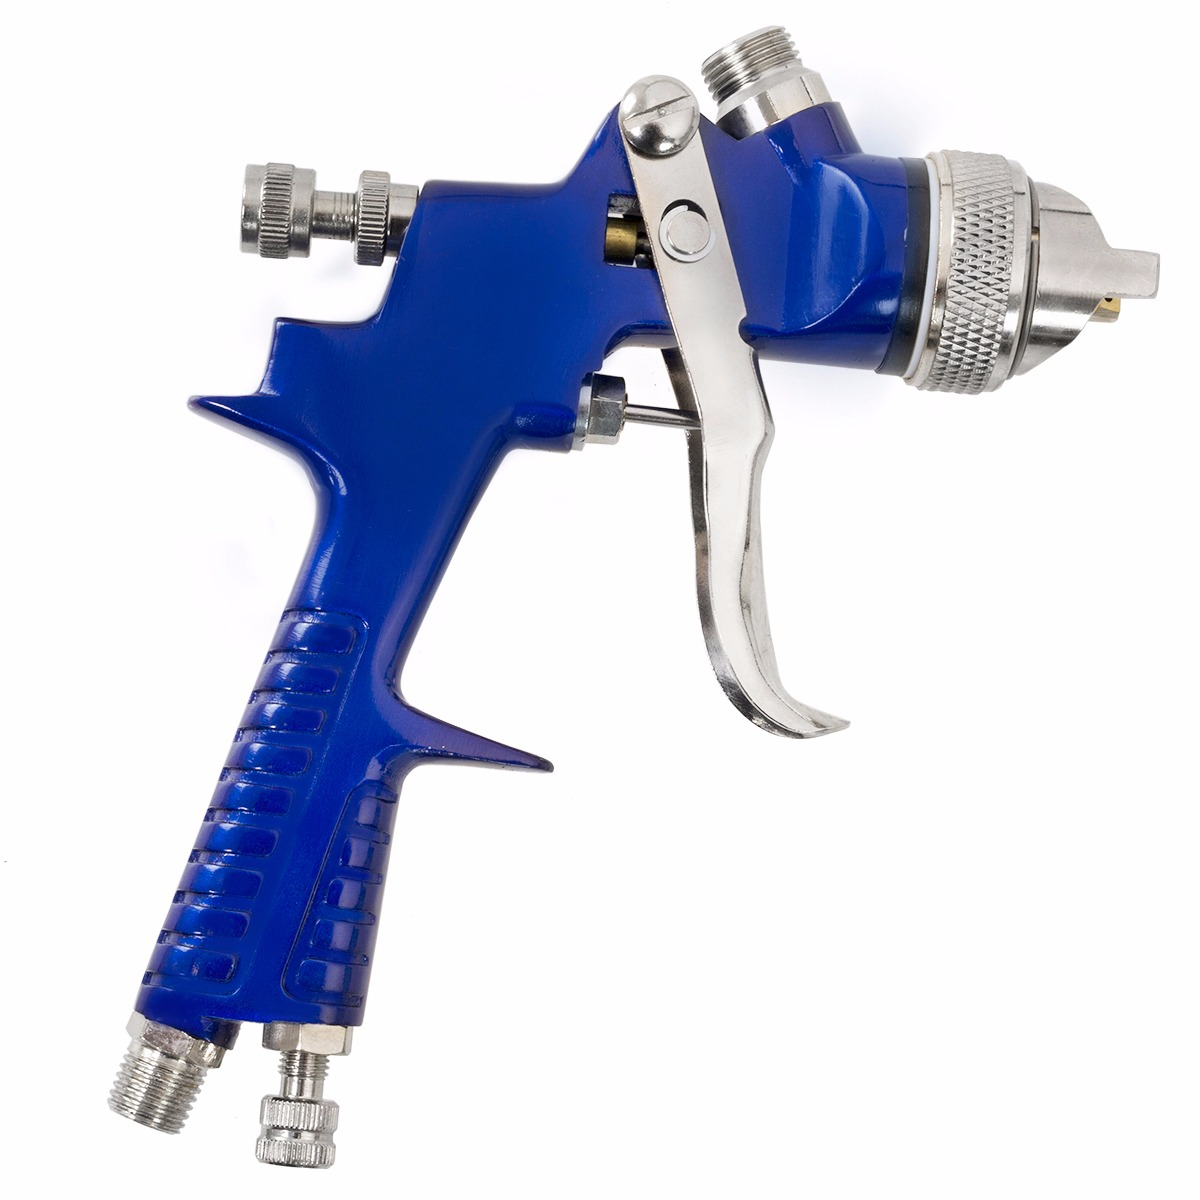 1.7mm Nozzle HVLP Gravity Feed Paint Air Spray Gun, with Plastic Cup